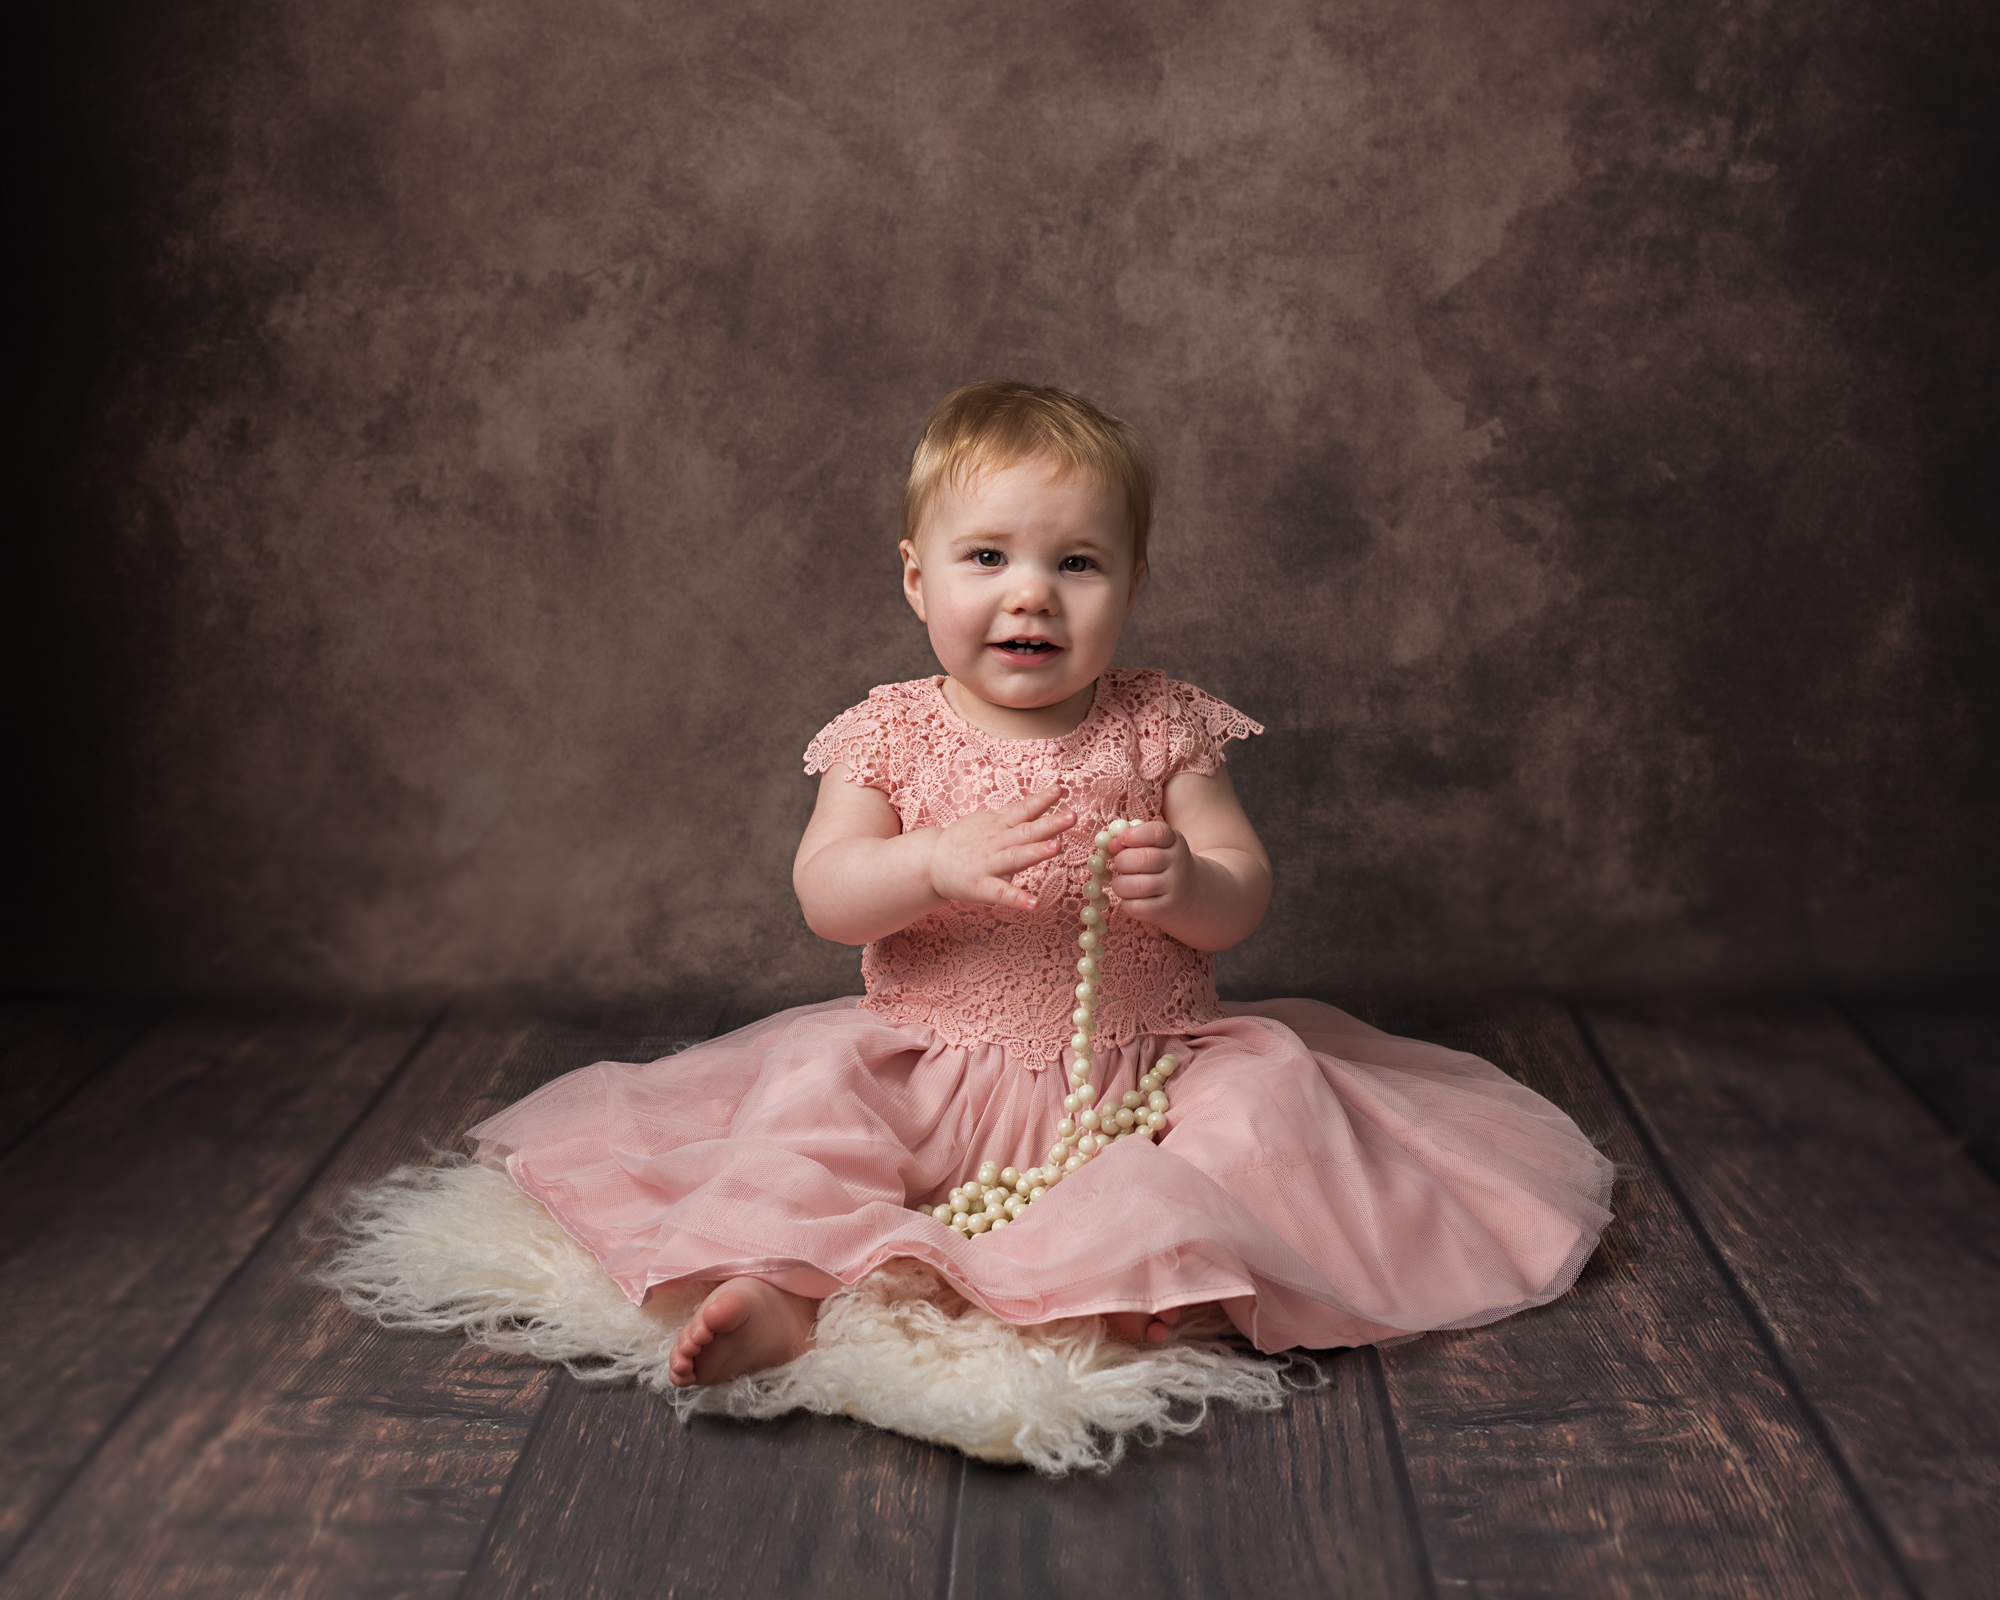 baby_photographer_dudley_midlands_sitting_on_fur